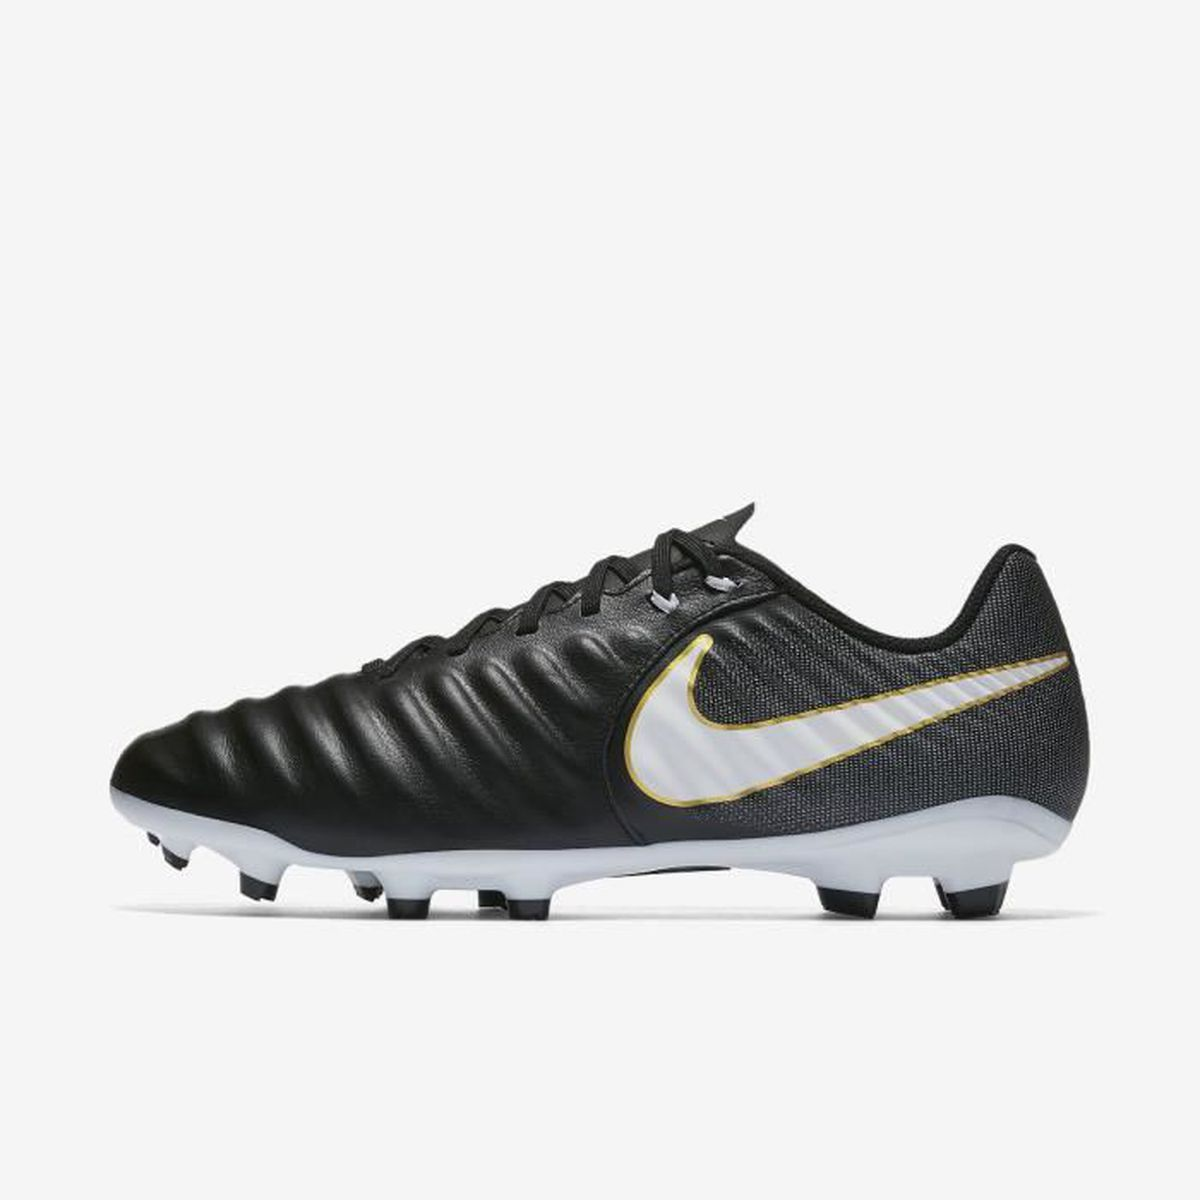 best sneakers 23314 aeee1 CHAUSSURES DE FOOTBALL Nike Tiempo Ligera IV Firm-Ground, Sol ferme, Adul